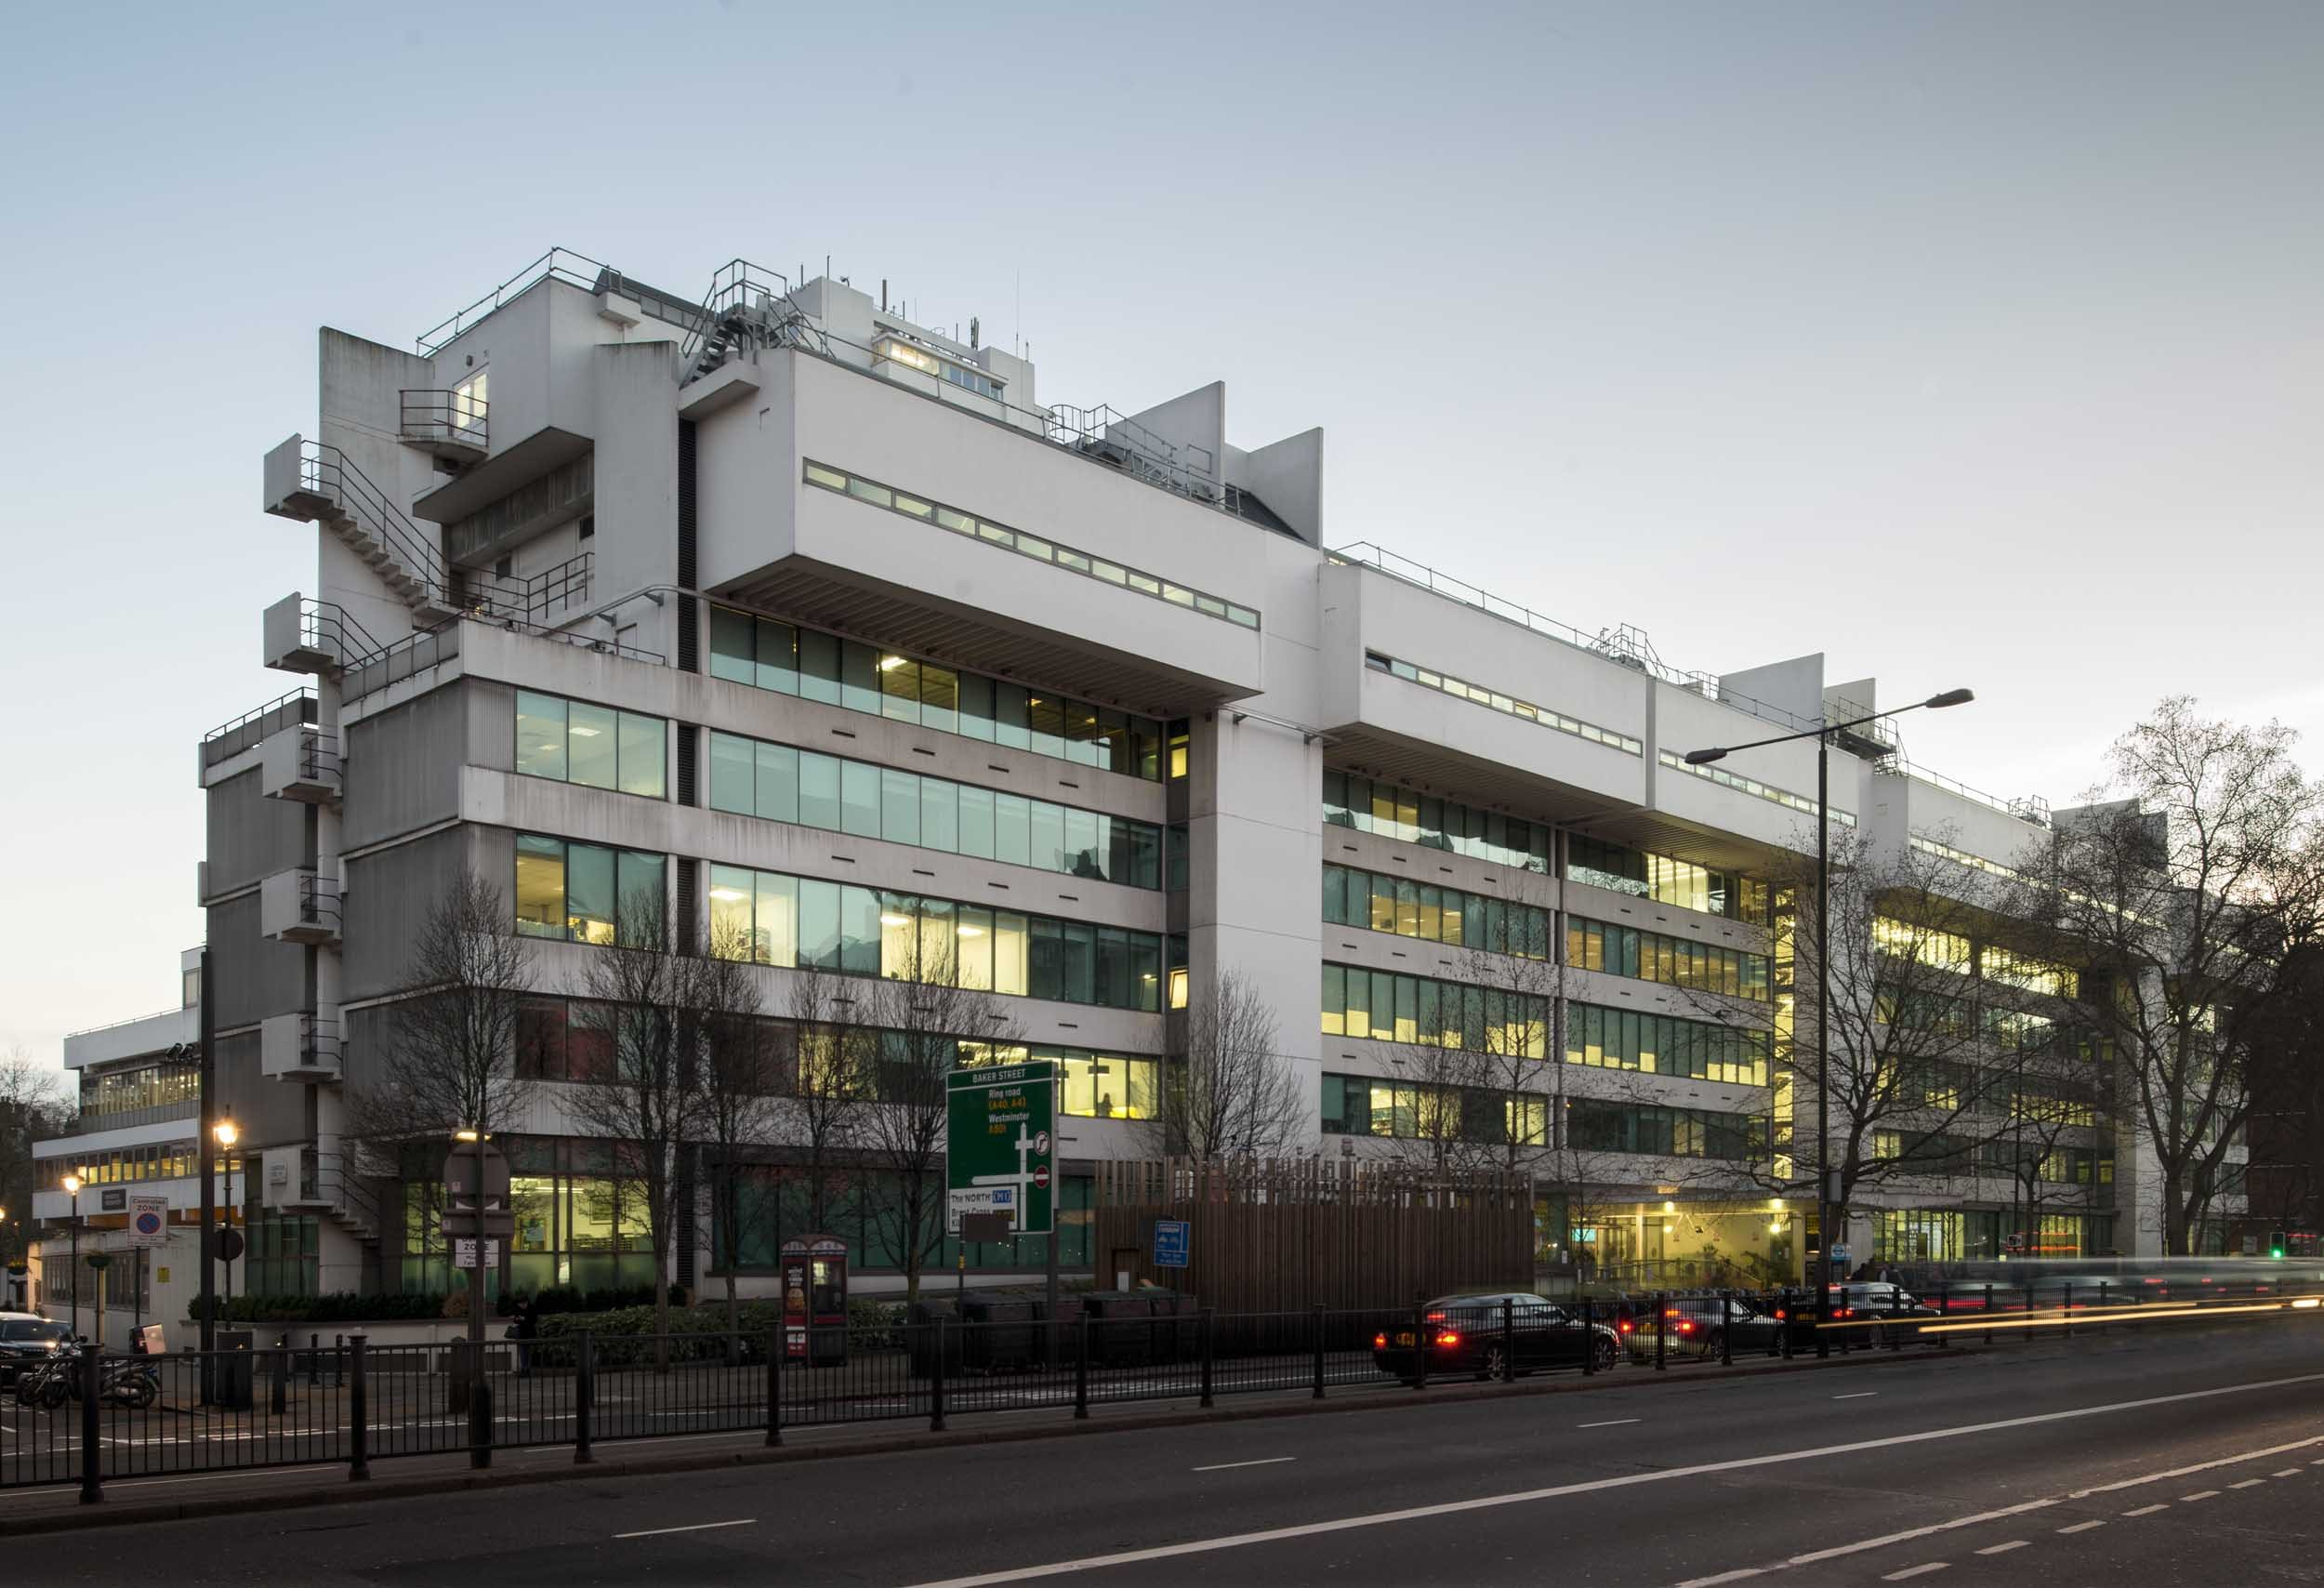 University of Westminster, Marylebone Road campus, 2014 (HEA photograph DP177601)